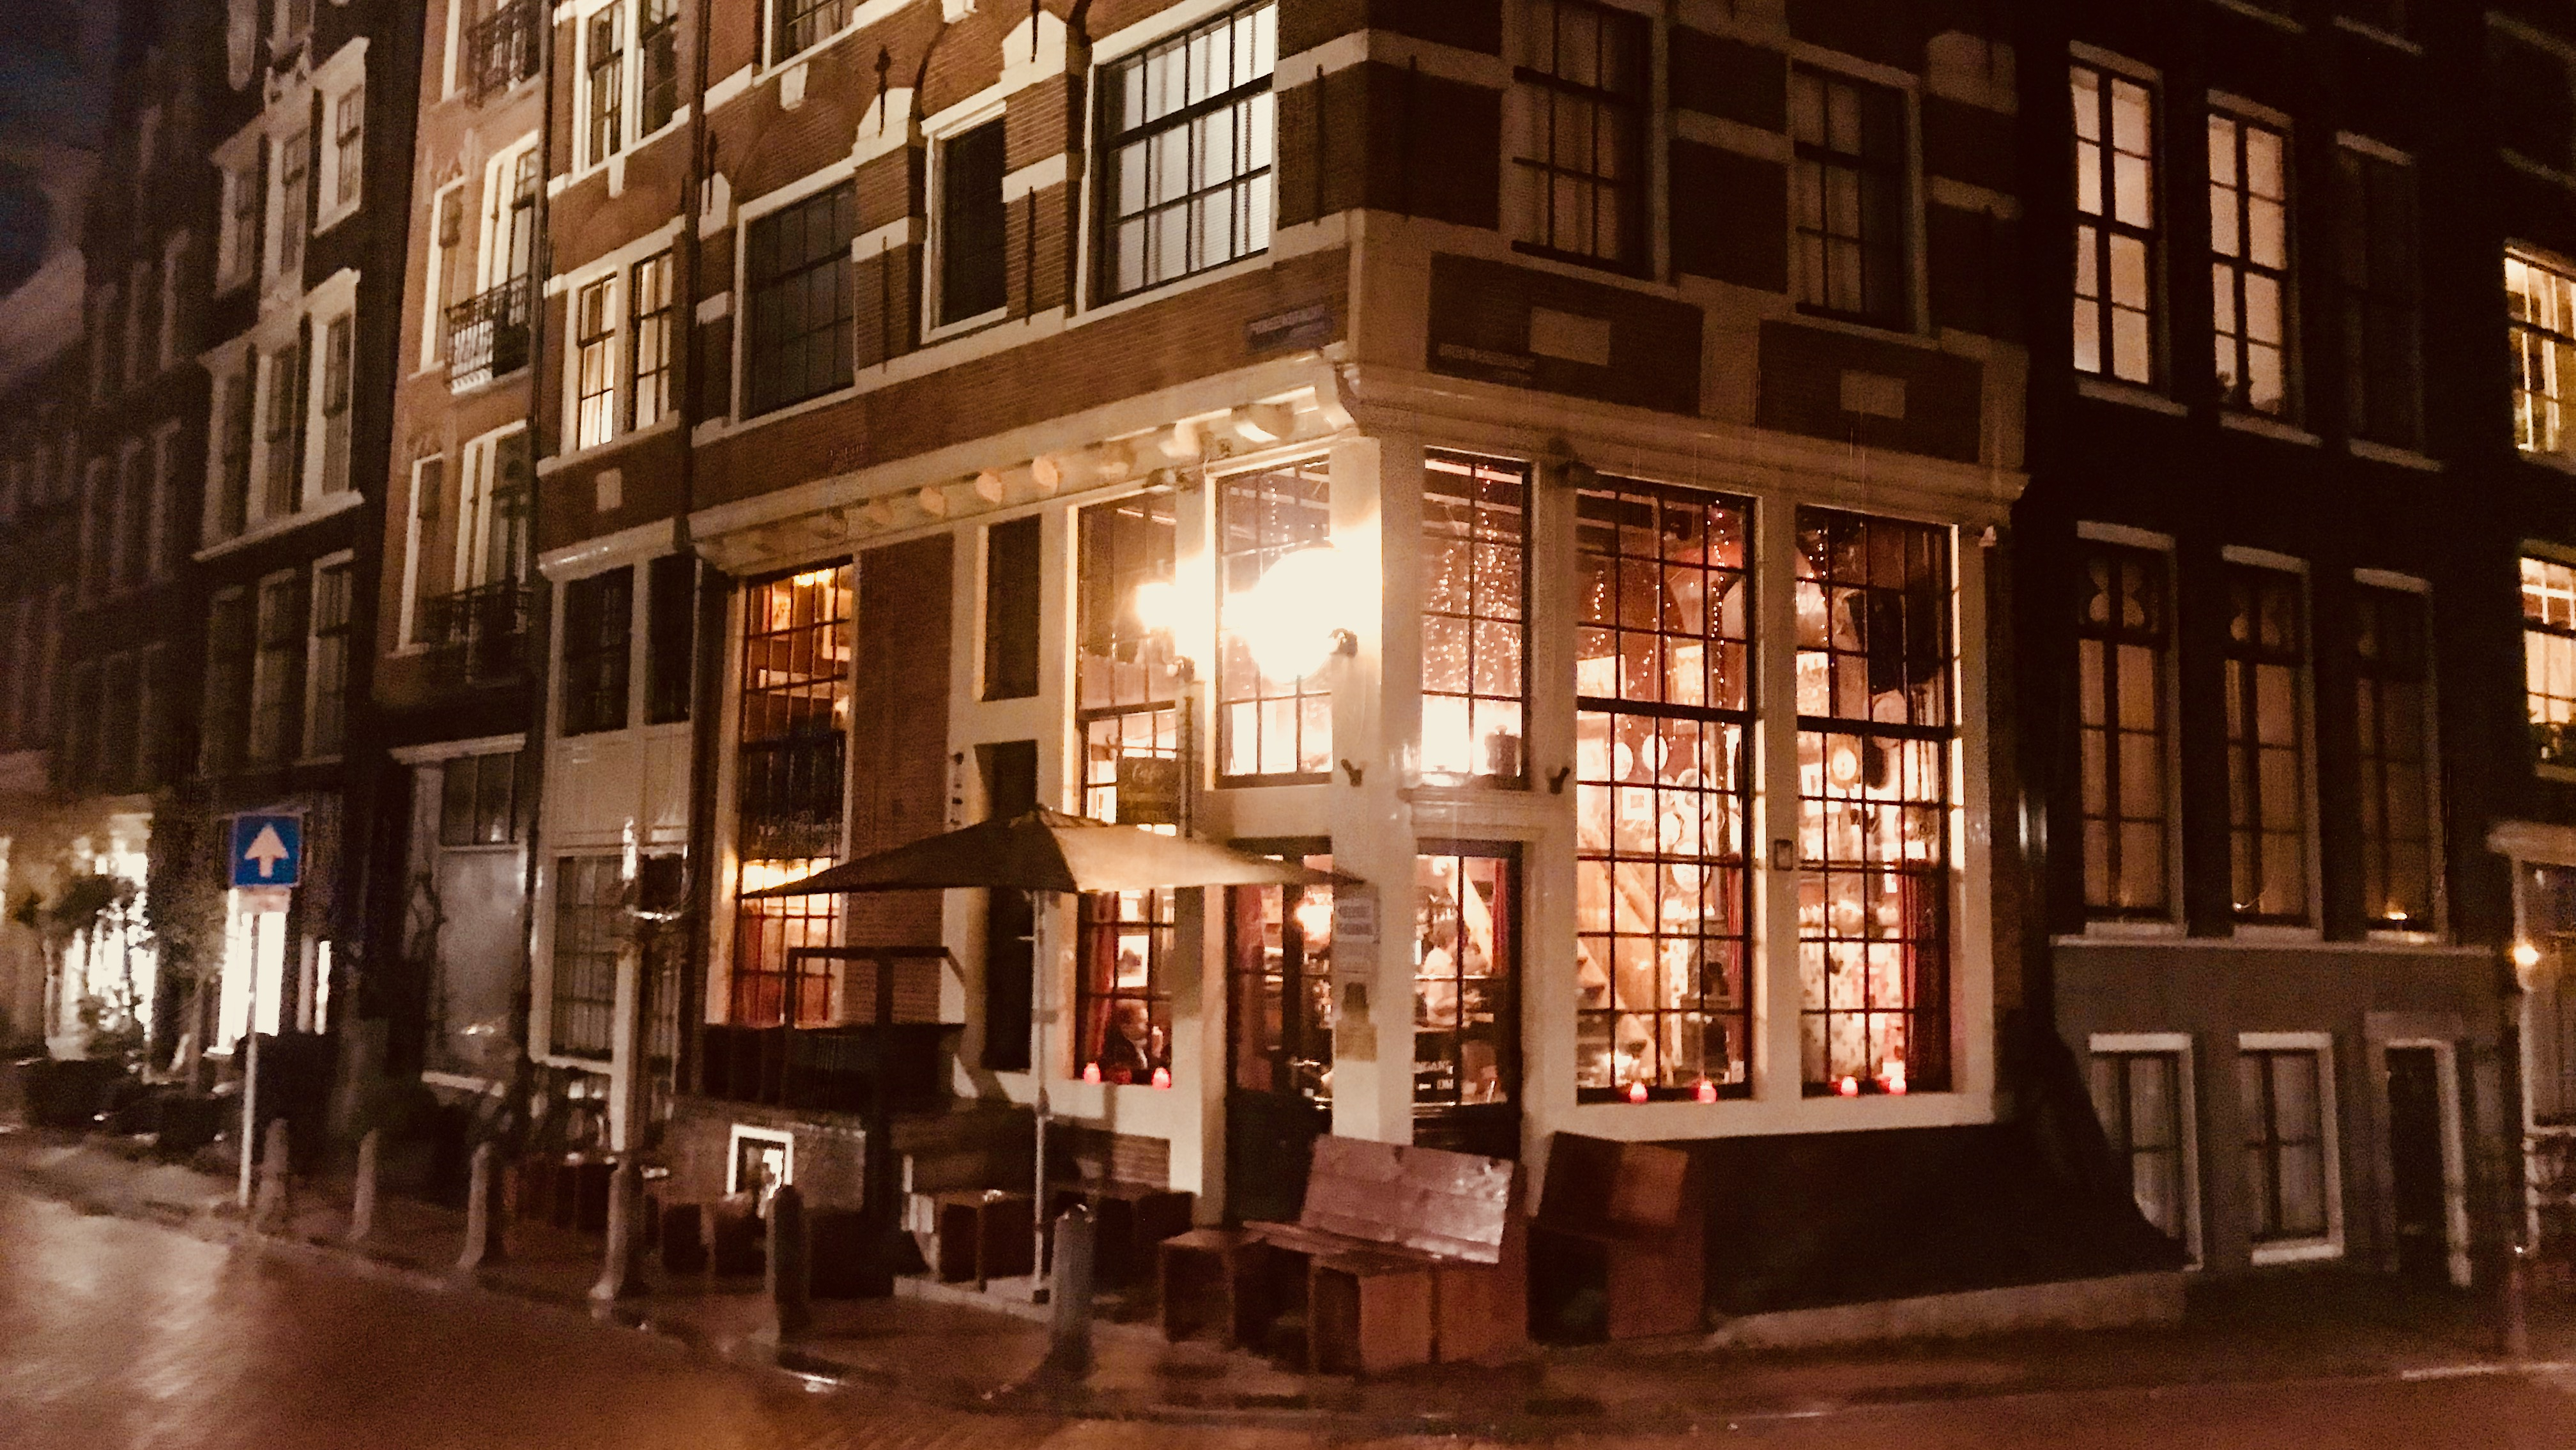 Café Papeneiland in Amsterdam. Historic place.